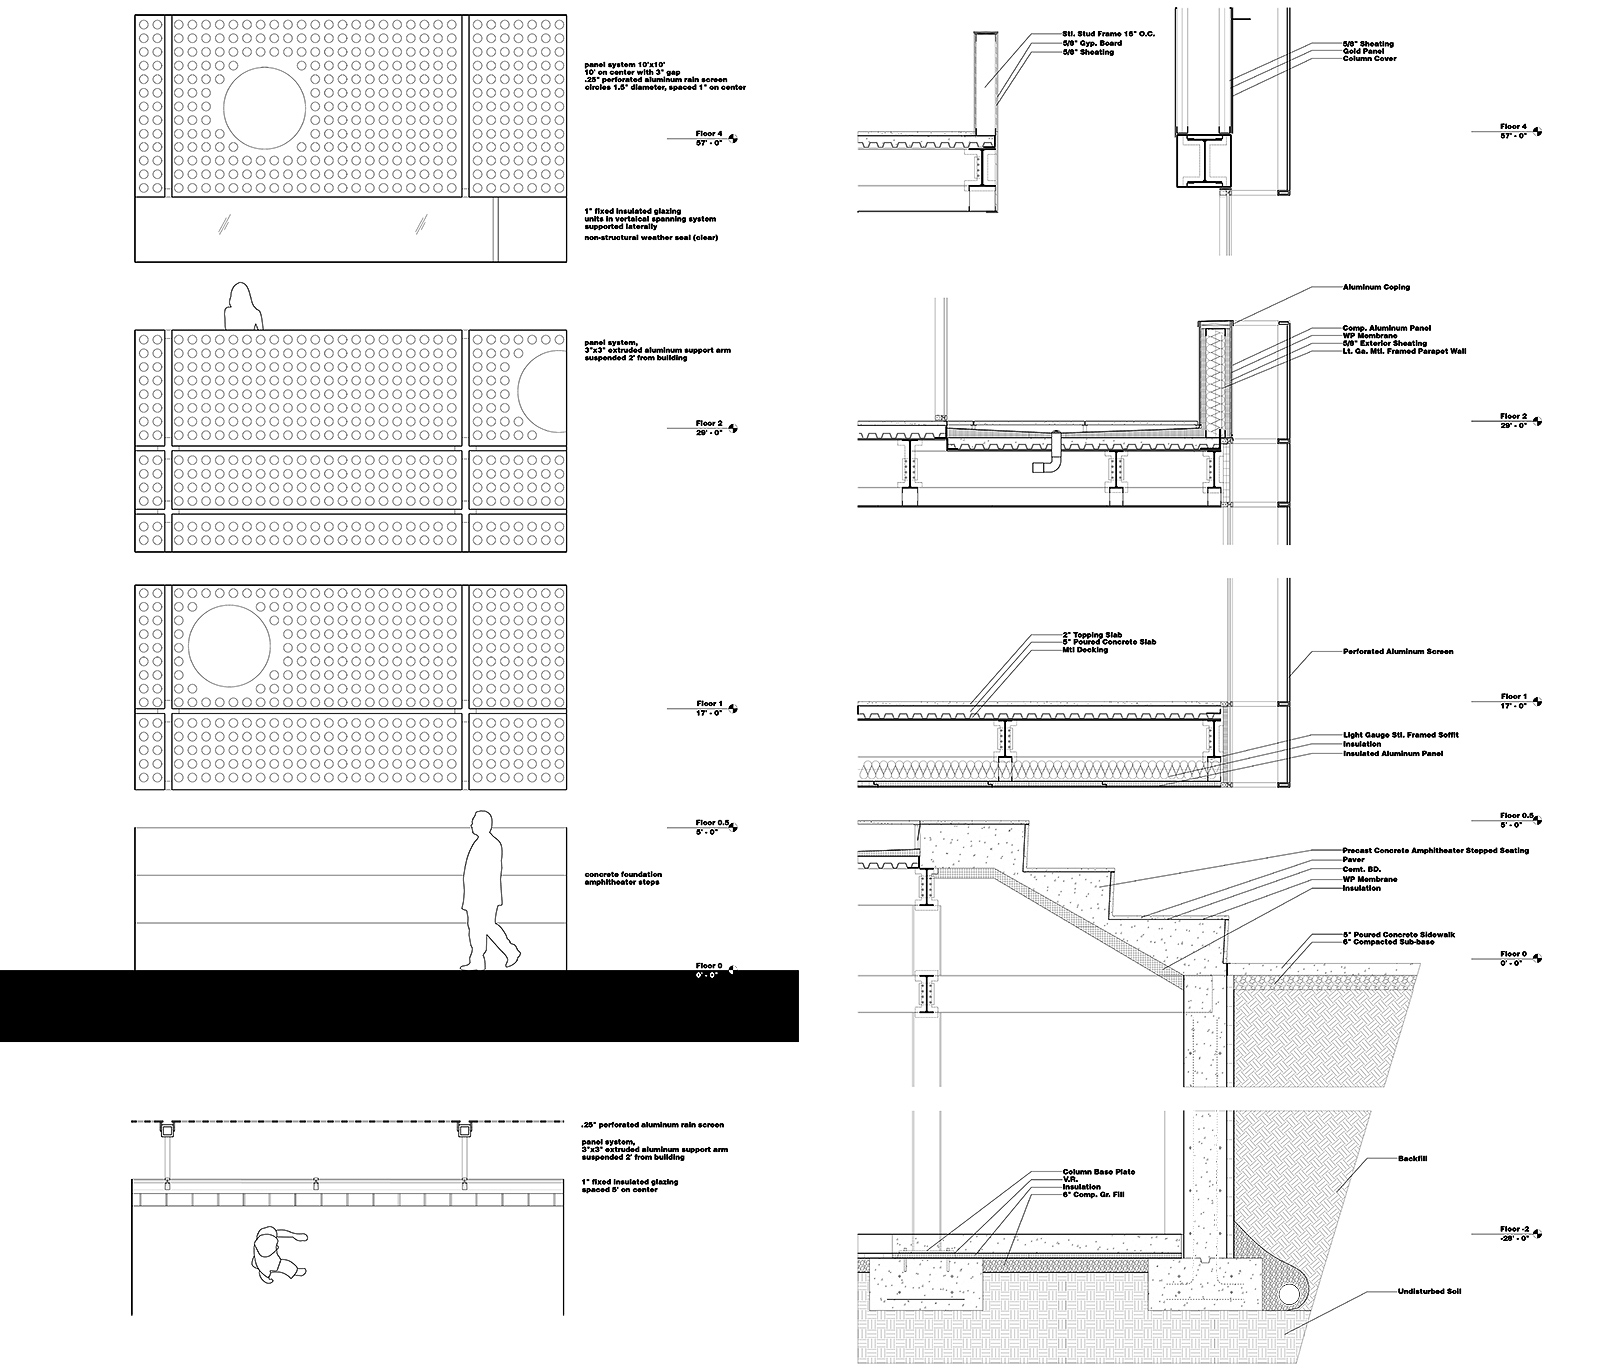 Elevation and section details showing how the layered facade will integrate with the main SPCS volumes